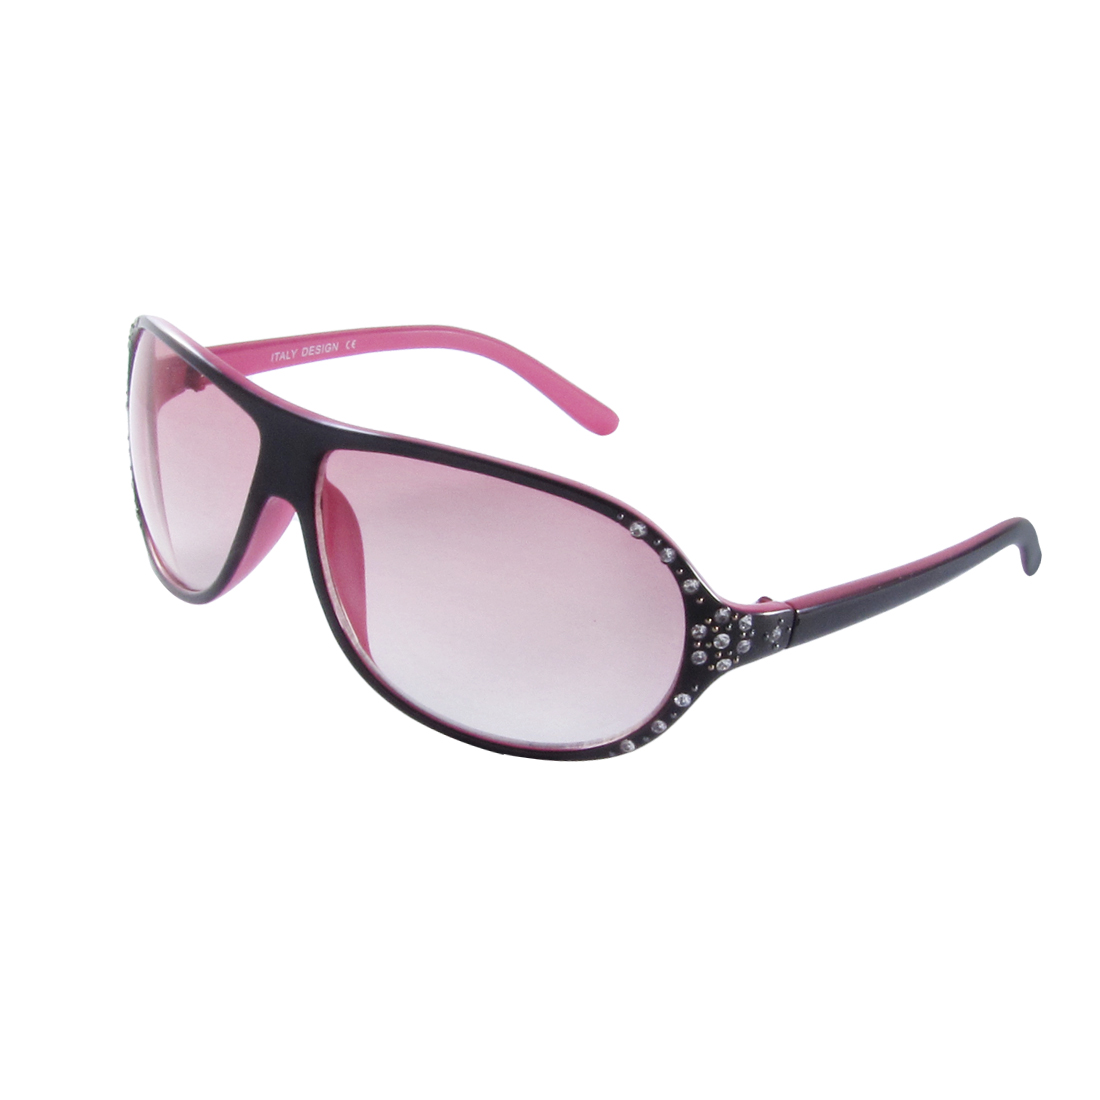 Rhinestones Inlaid Pink Black Plastic Frame Gradient Lens Sunglasses for Women